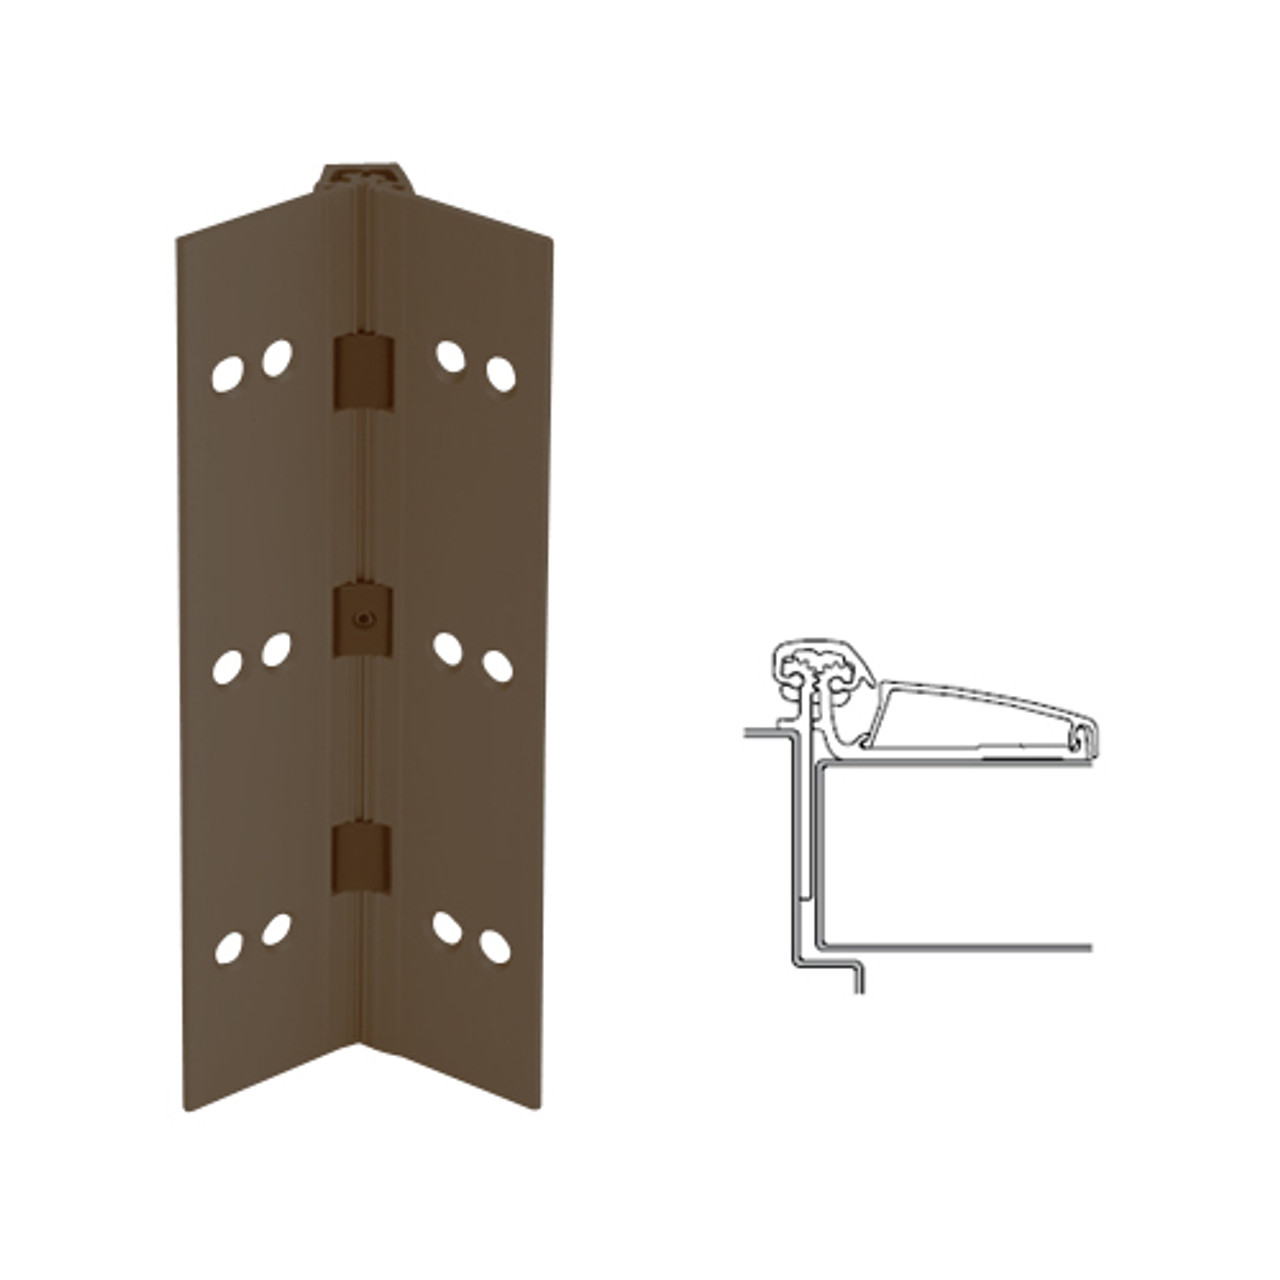 045XY-313AN-95-TFWD IVES Adjustable Half Surface Continuous Geared Hinges with Thread Forming Screws in Dark Bronze Anodized